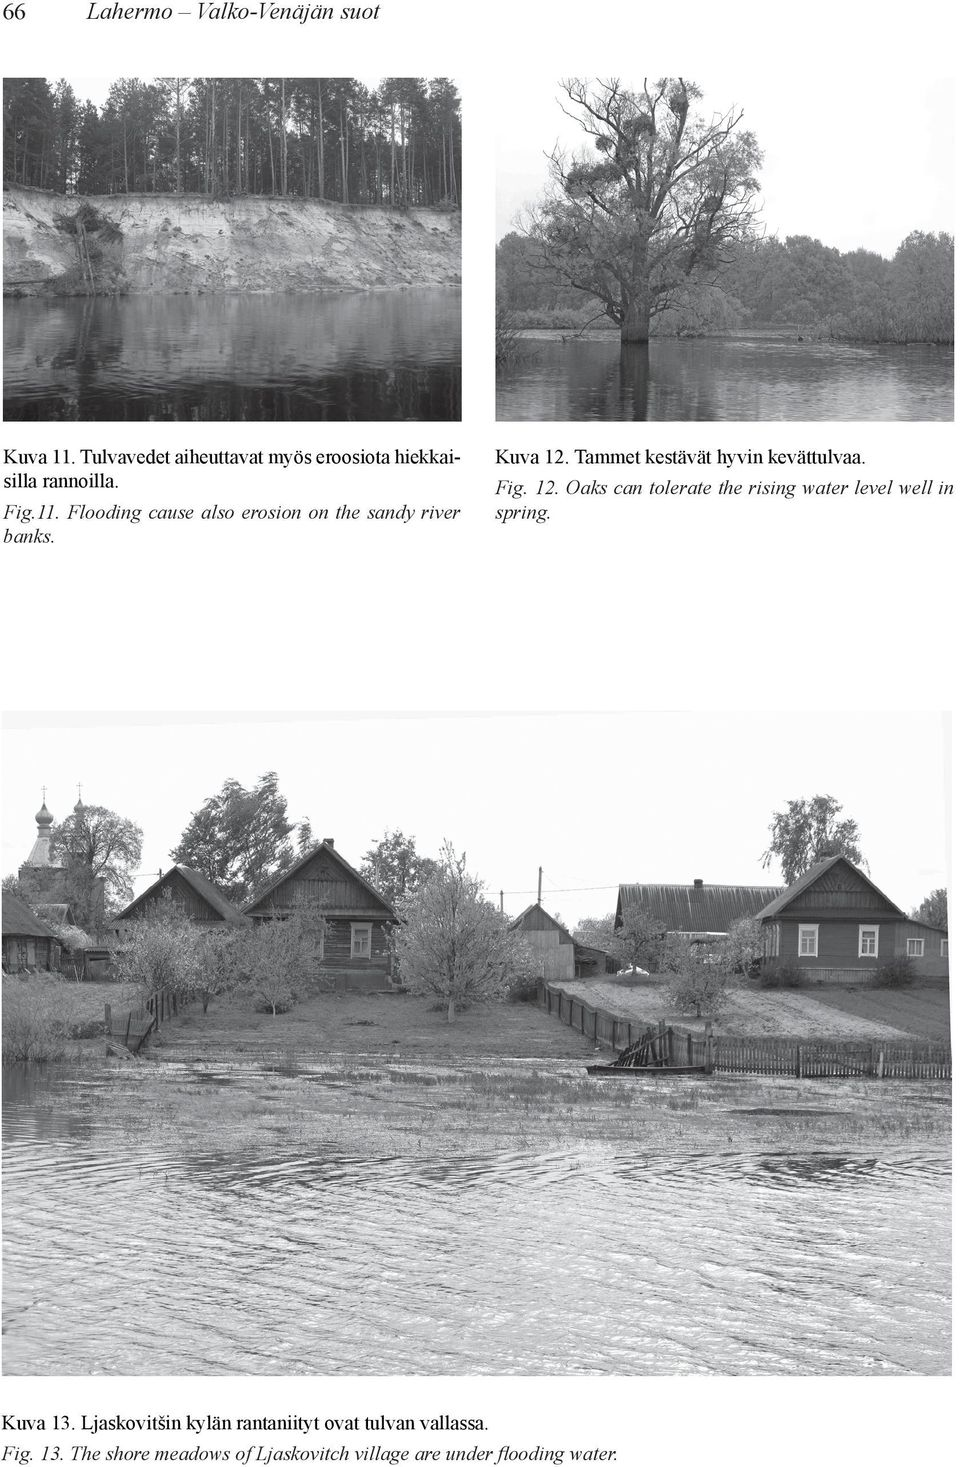 Tammet kestävät hyvin kevättulvaa. Fig. 12. Oaks can tolerate the rising water level well in spring.